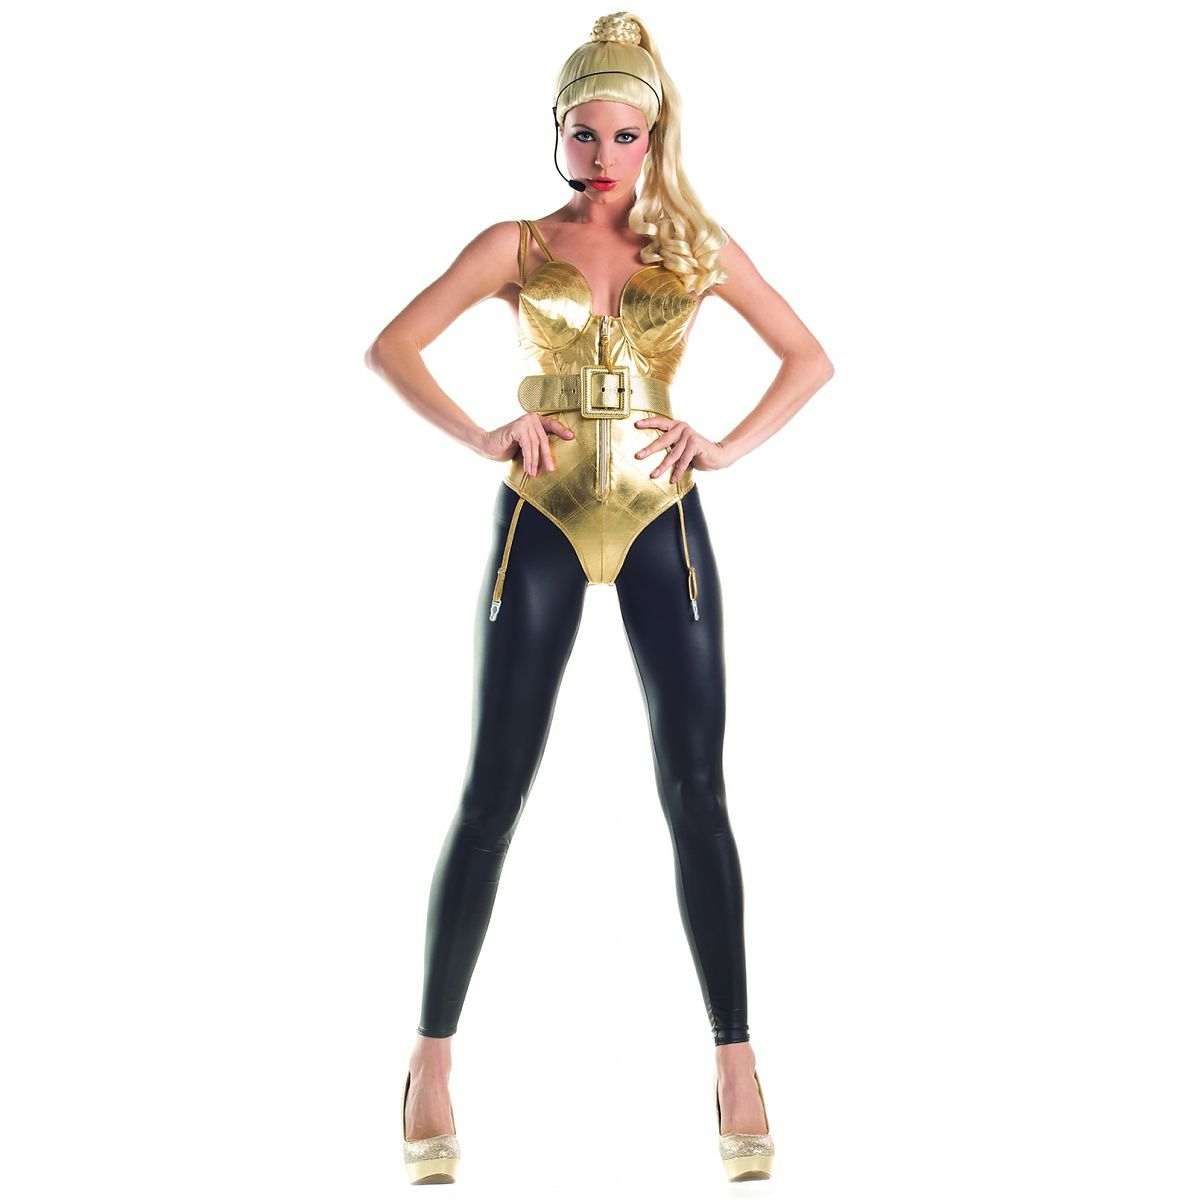 party king madonna cone bra costume from sears - cheapest price